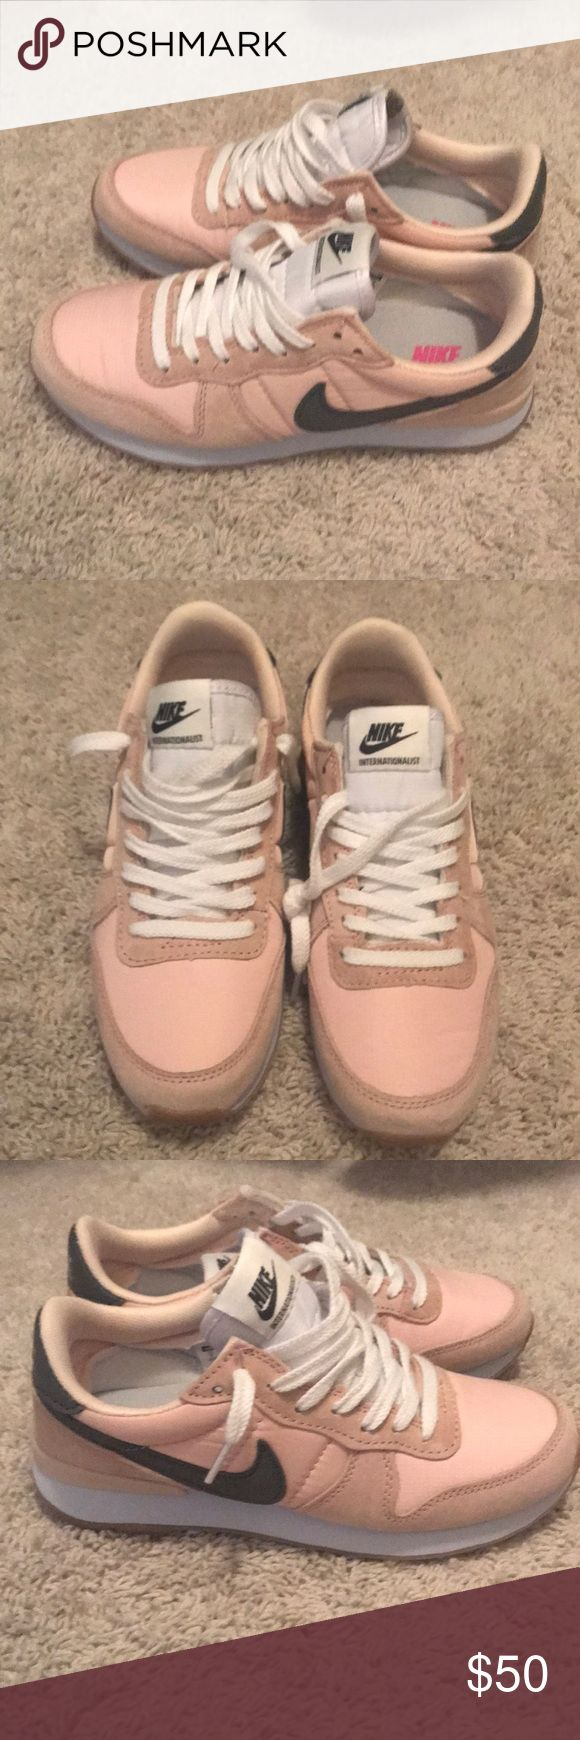 Nikes Brand new never worn!!! Light pink with bubble gum bottoms. Size 7. No box. Just little to big for me, need a 6.5 Nike Shoes Sneakers